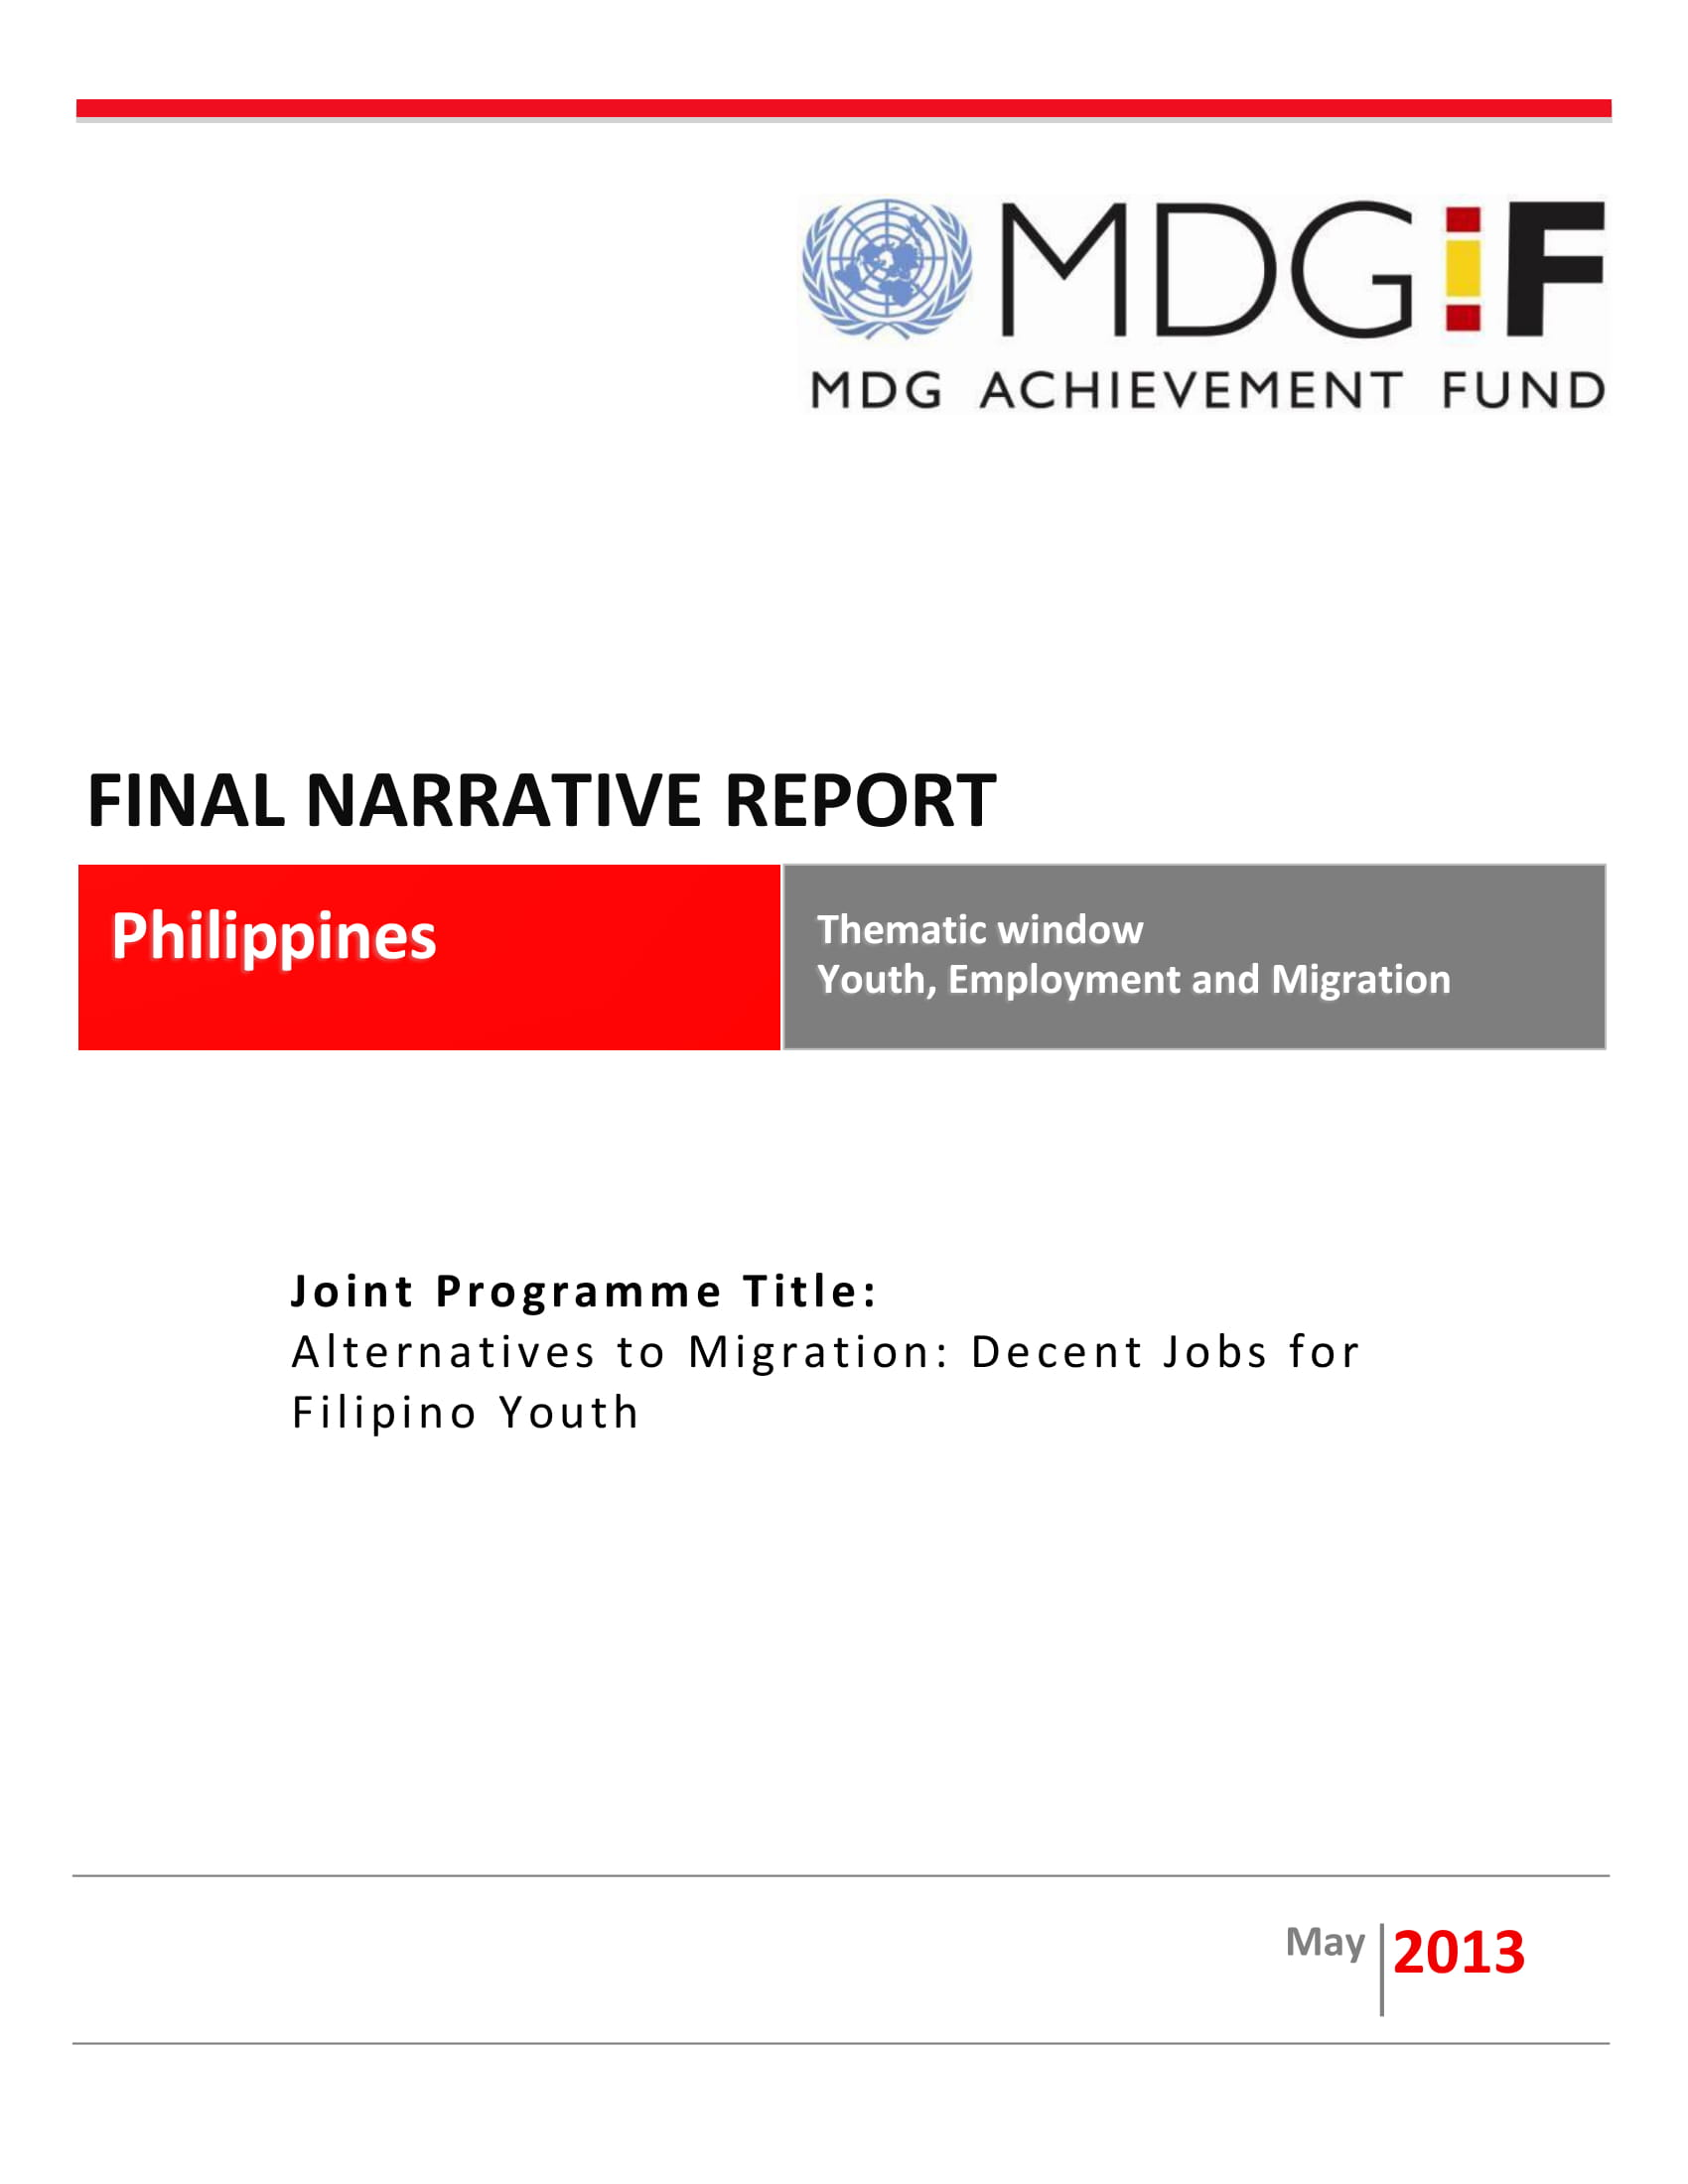 how to write a narrative report